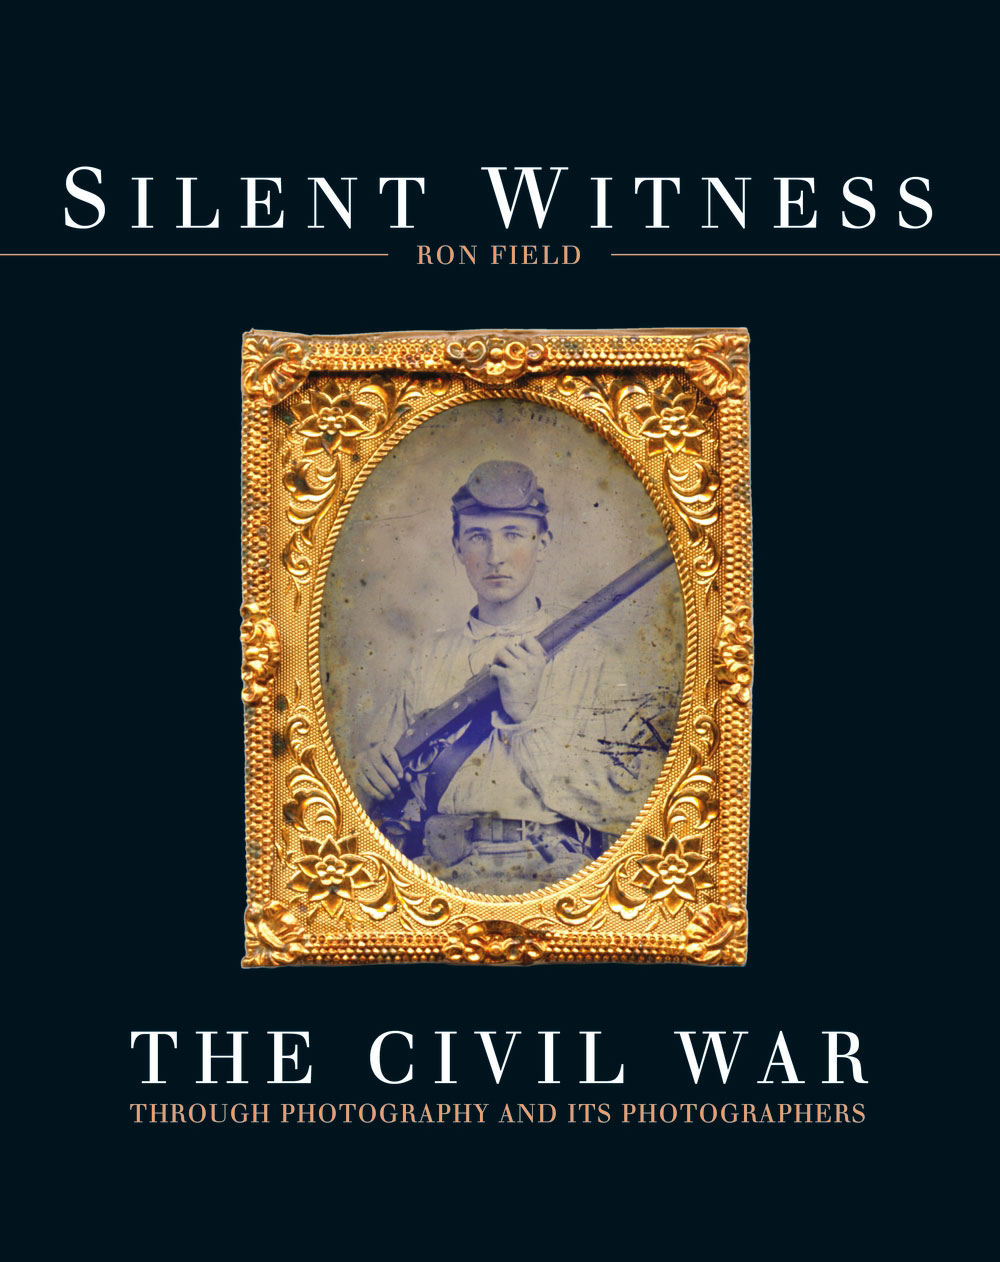 Silent Witness book